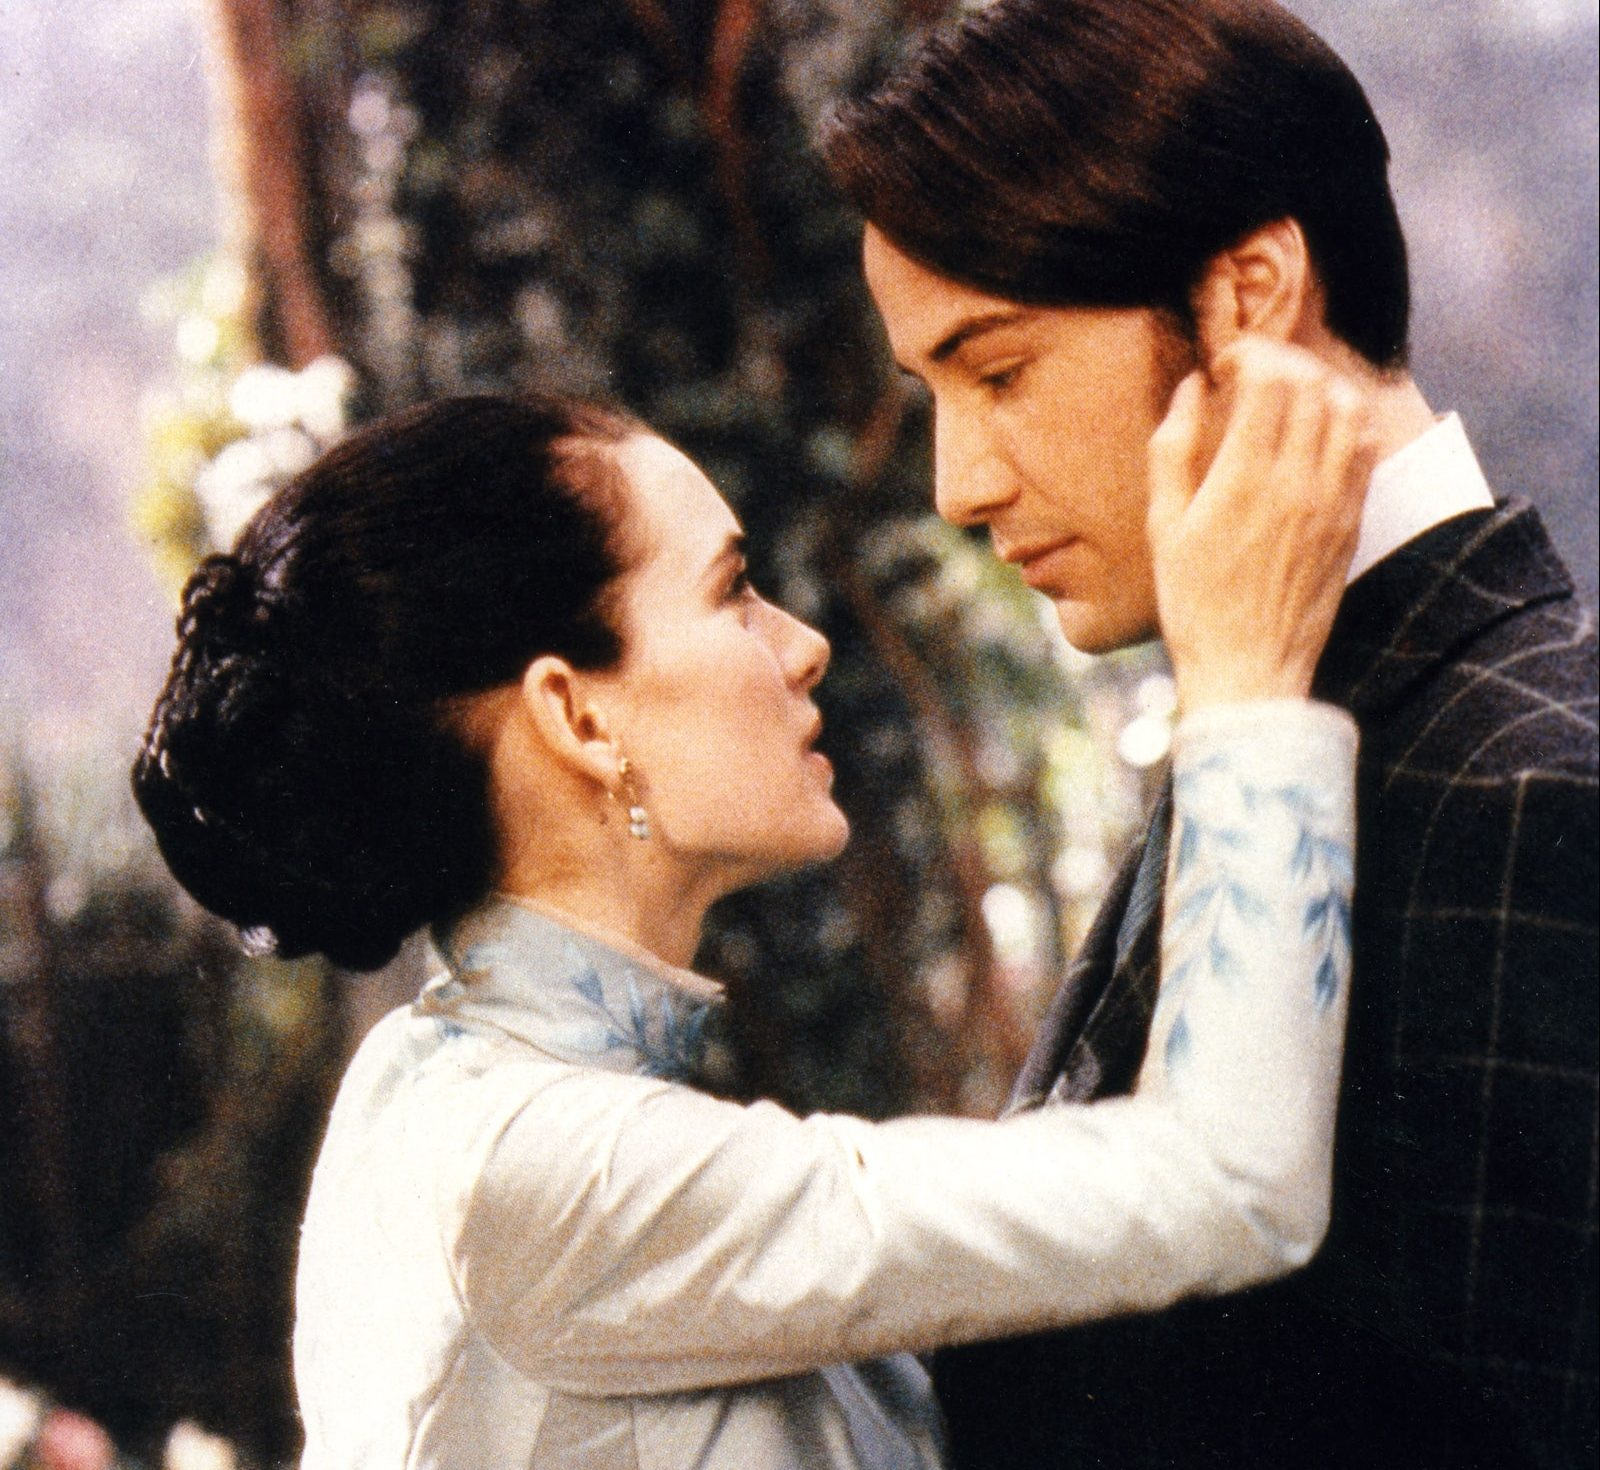 00 story image winona ryder keanu reeves married dracula e1622106970971 20 Things You Never Knew About Keanu Reeves